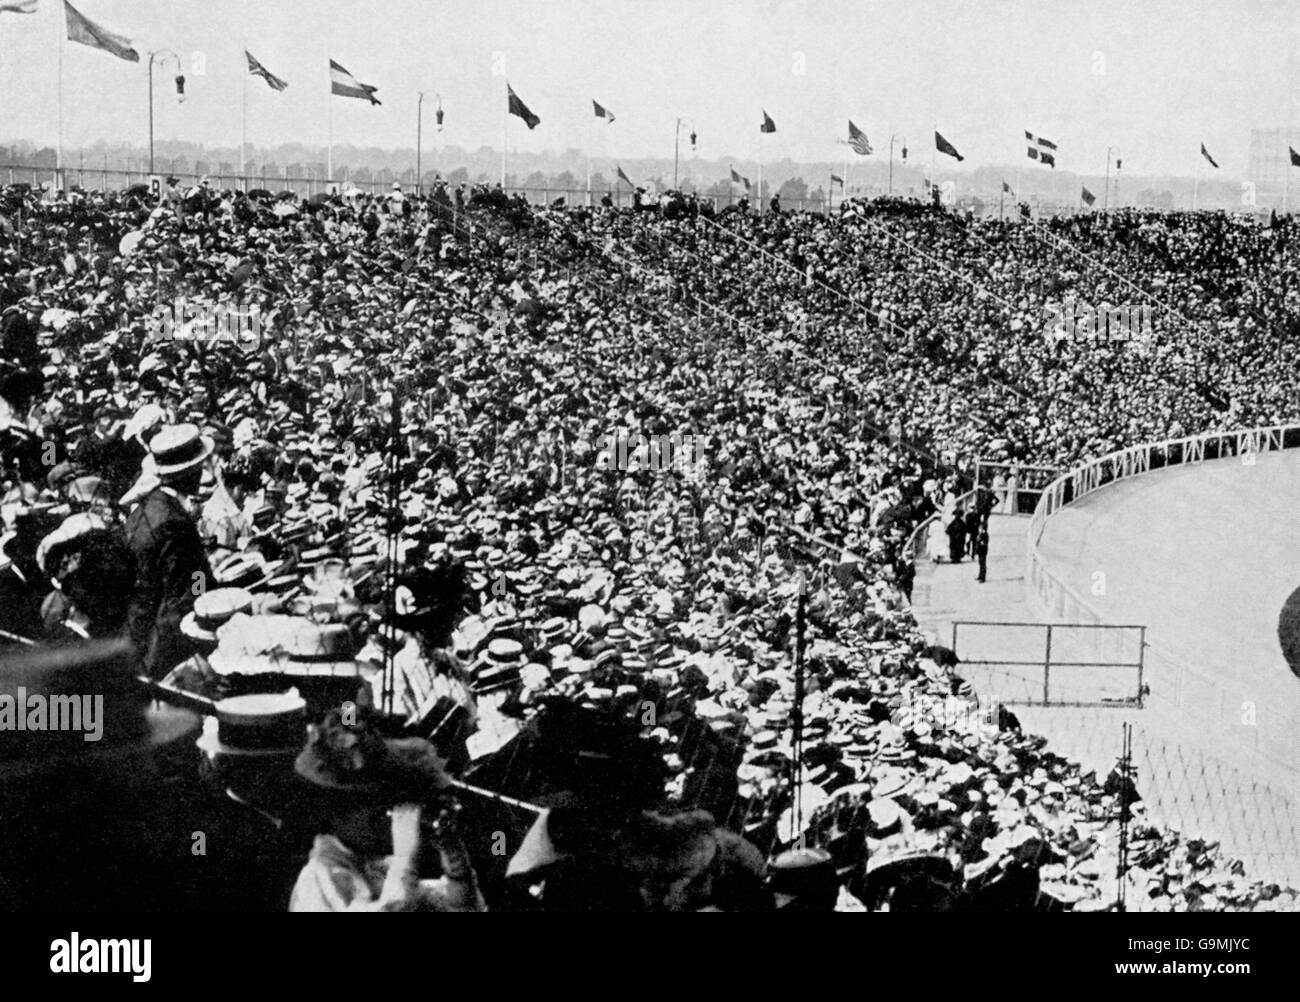 London Olympic Games 1908 - White City Stock Photo